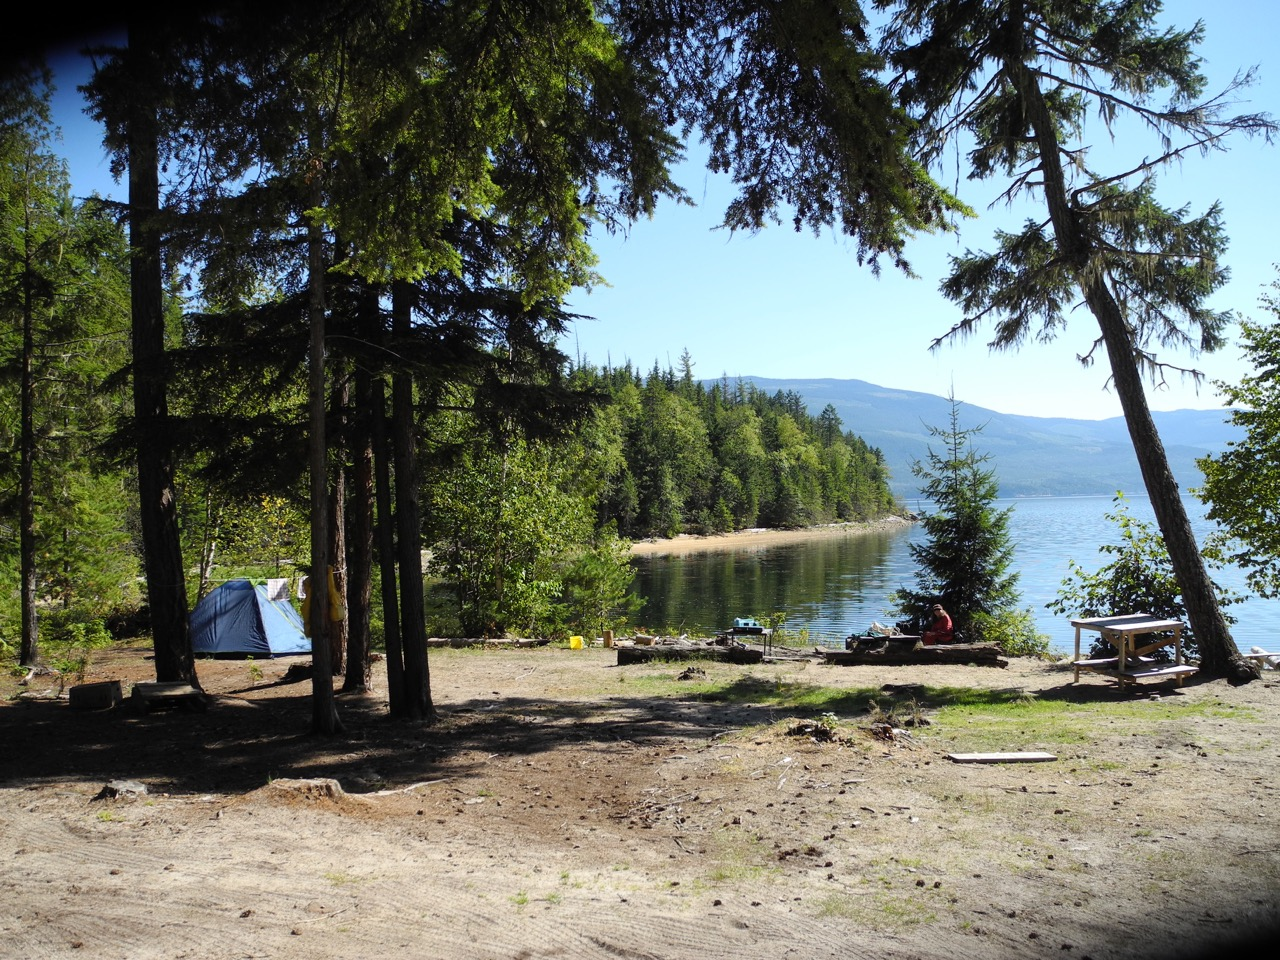 Many opportunities for camping in the shuswap shuswap for Lakes in bc with cabins